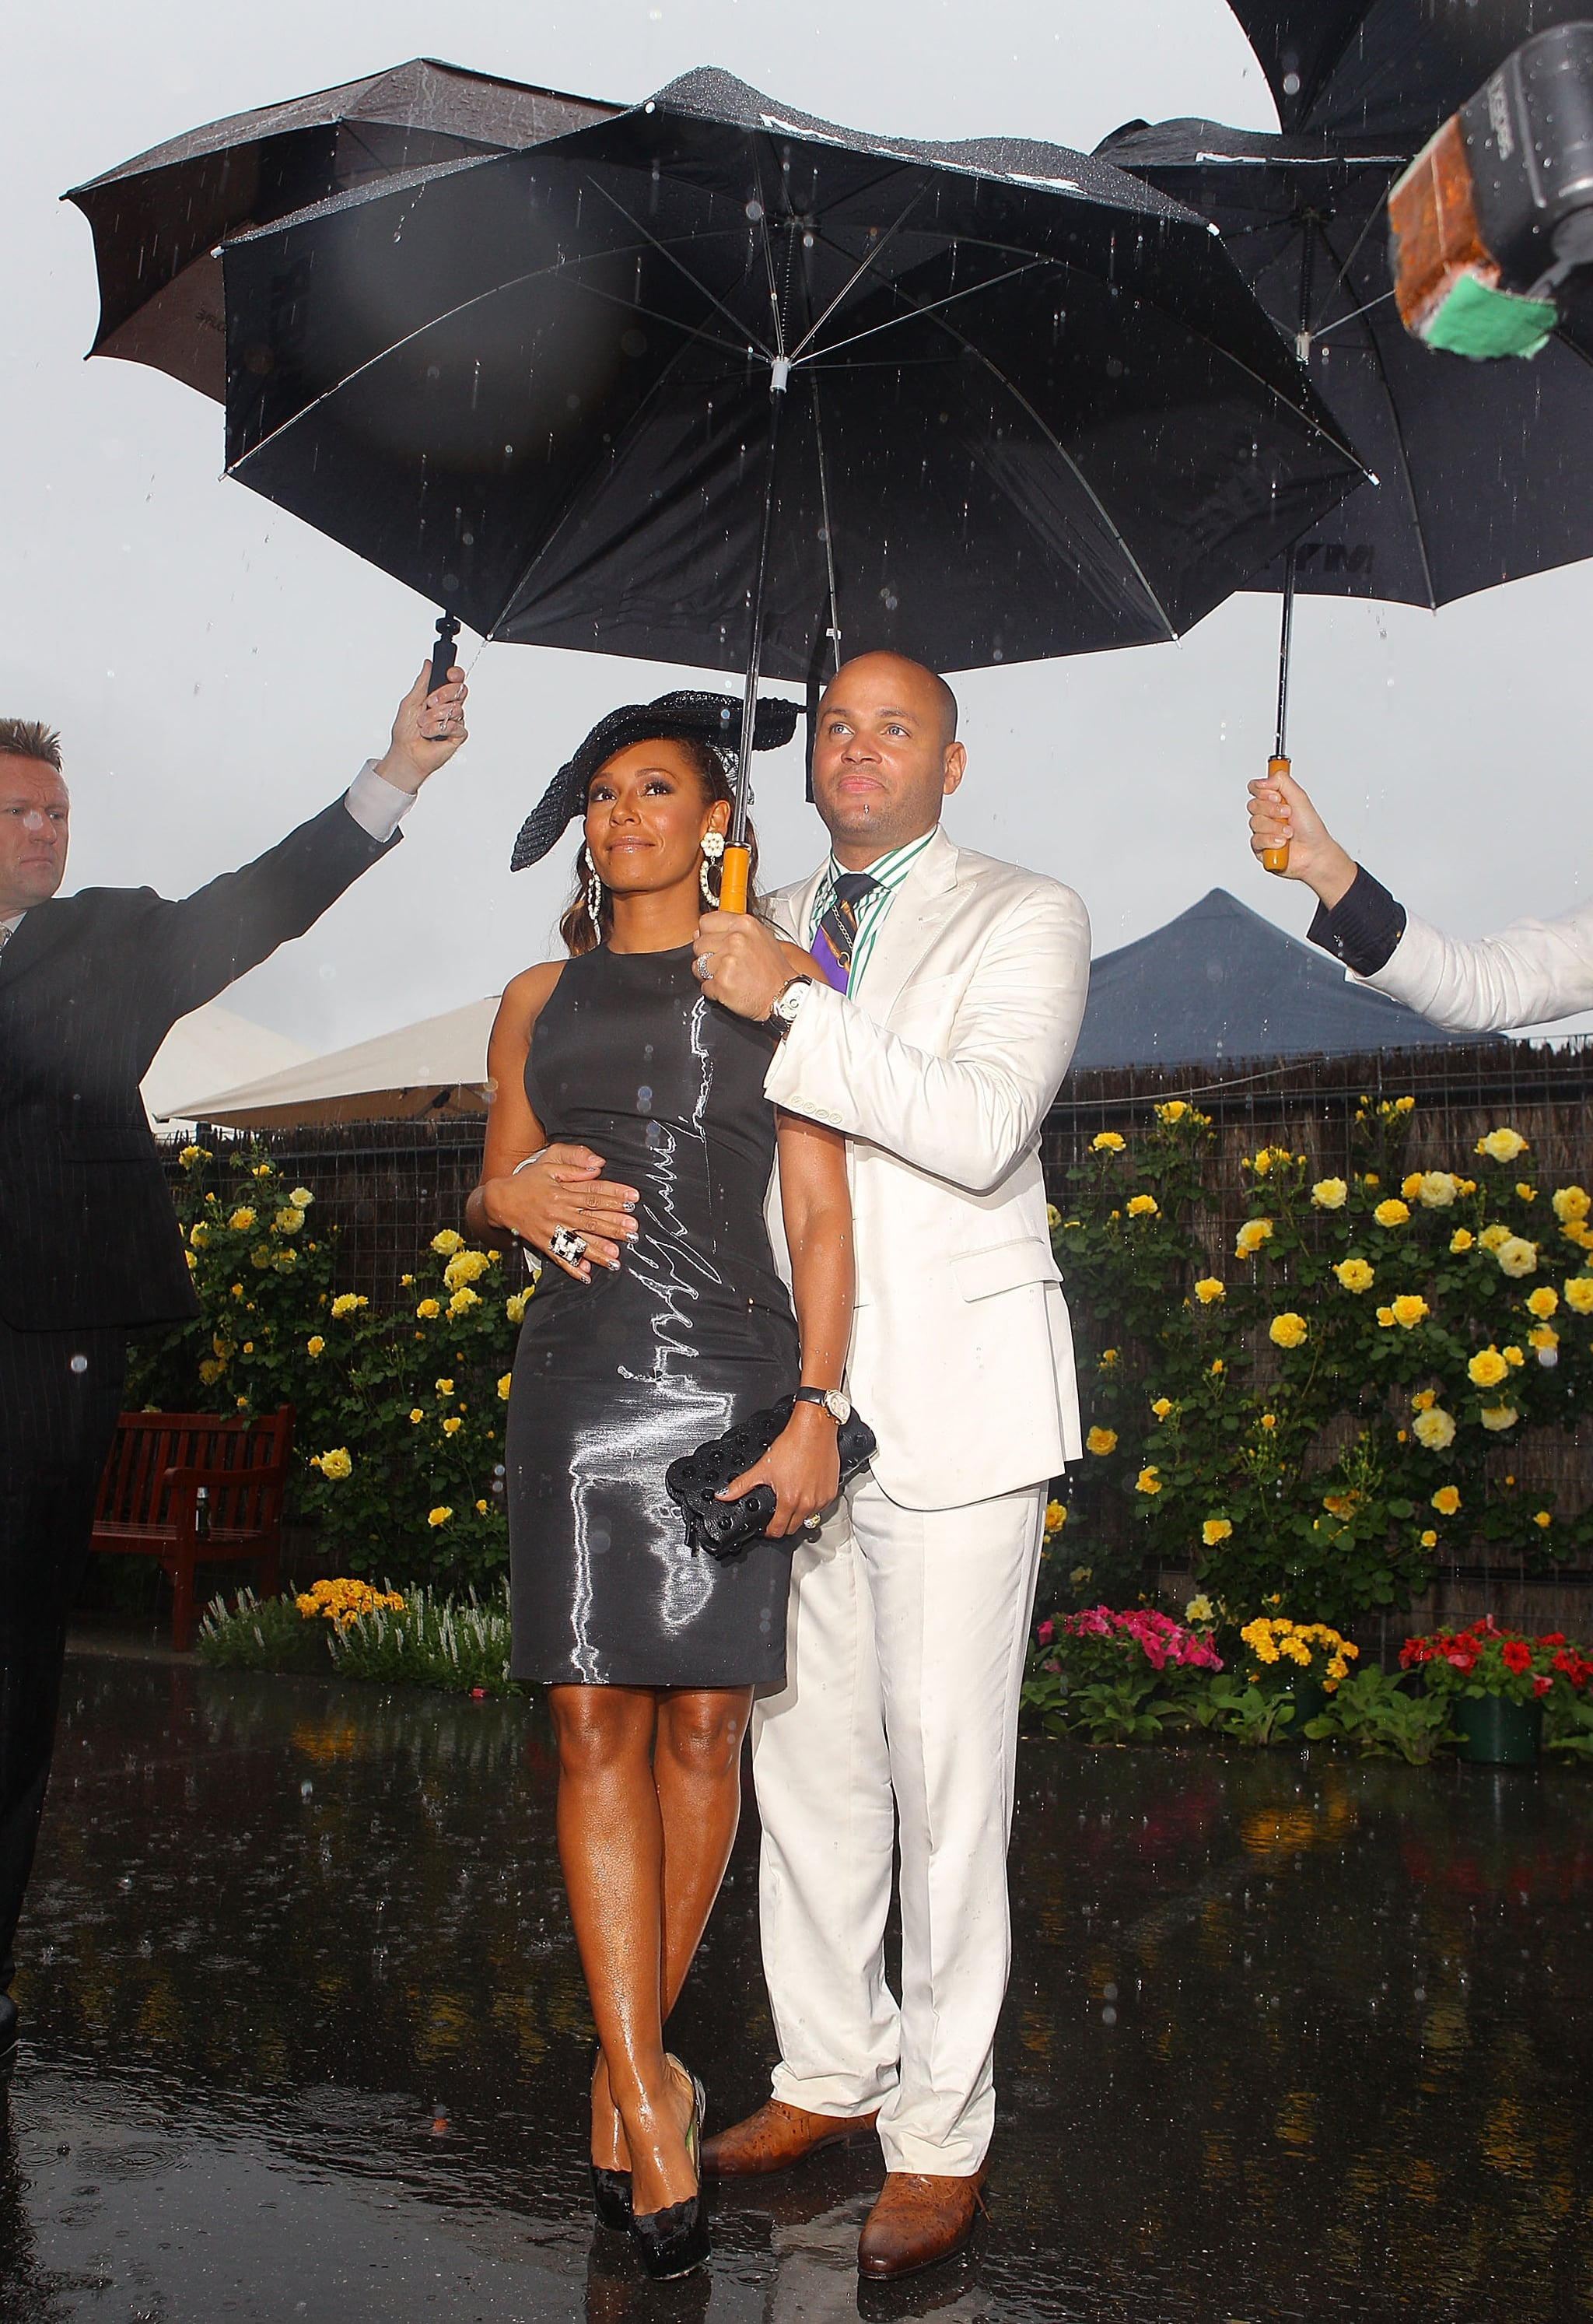 Mel B withstands the showers